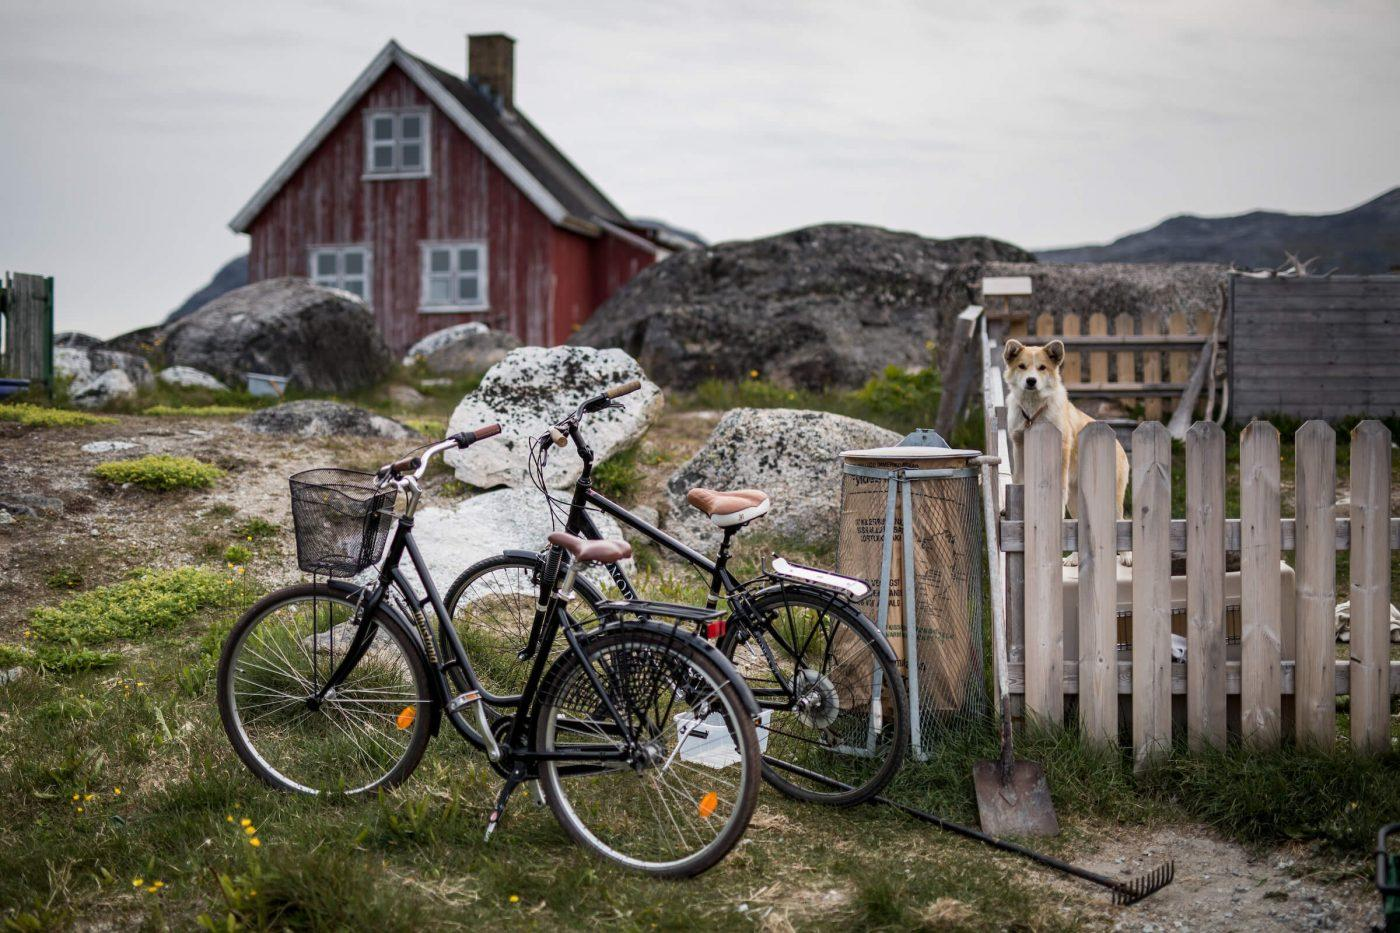 Two bikes parked outside a house in Nanortalik while a dog stares at the photographer in South Greenland. Photo by Mads Pihl.